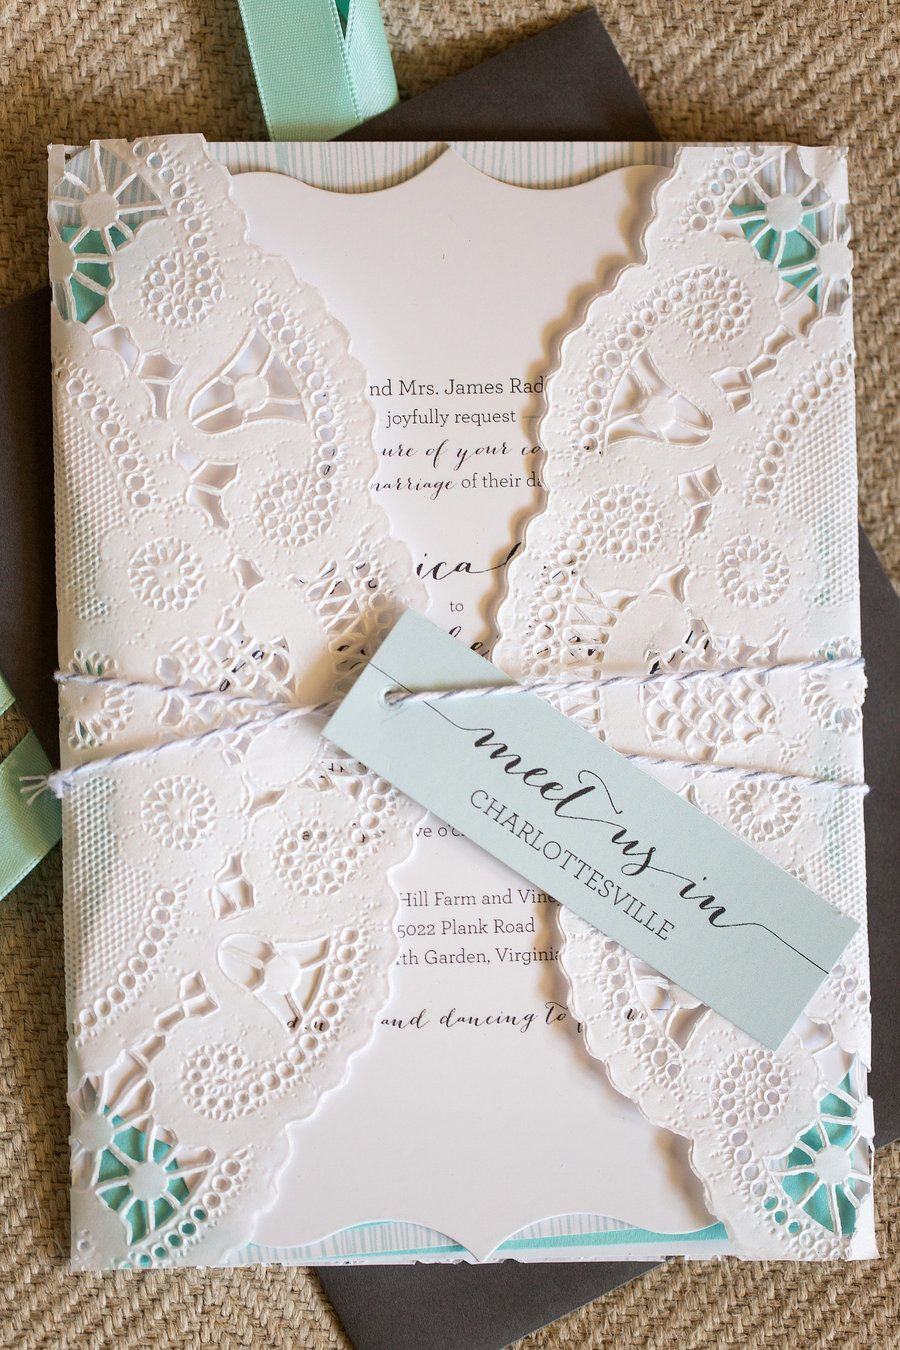 Charlottesville Wedding from Katelyn James | Wedding Invitations ...